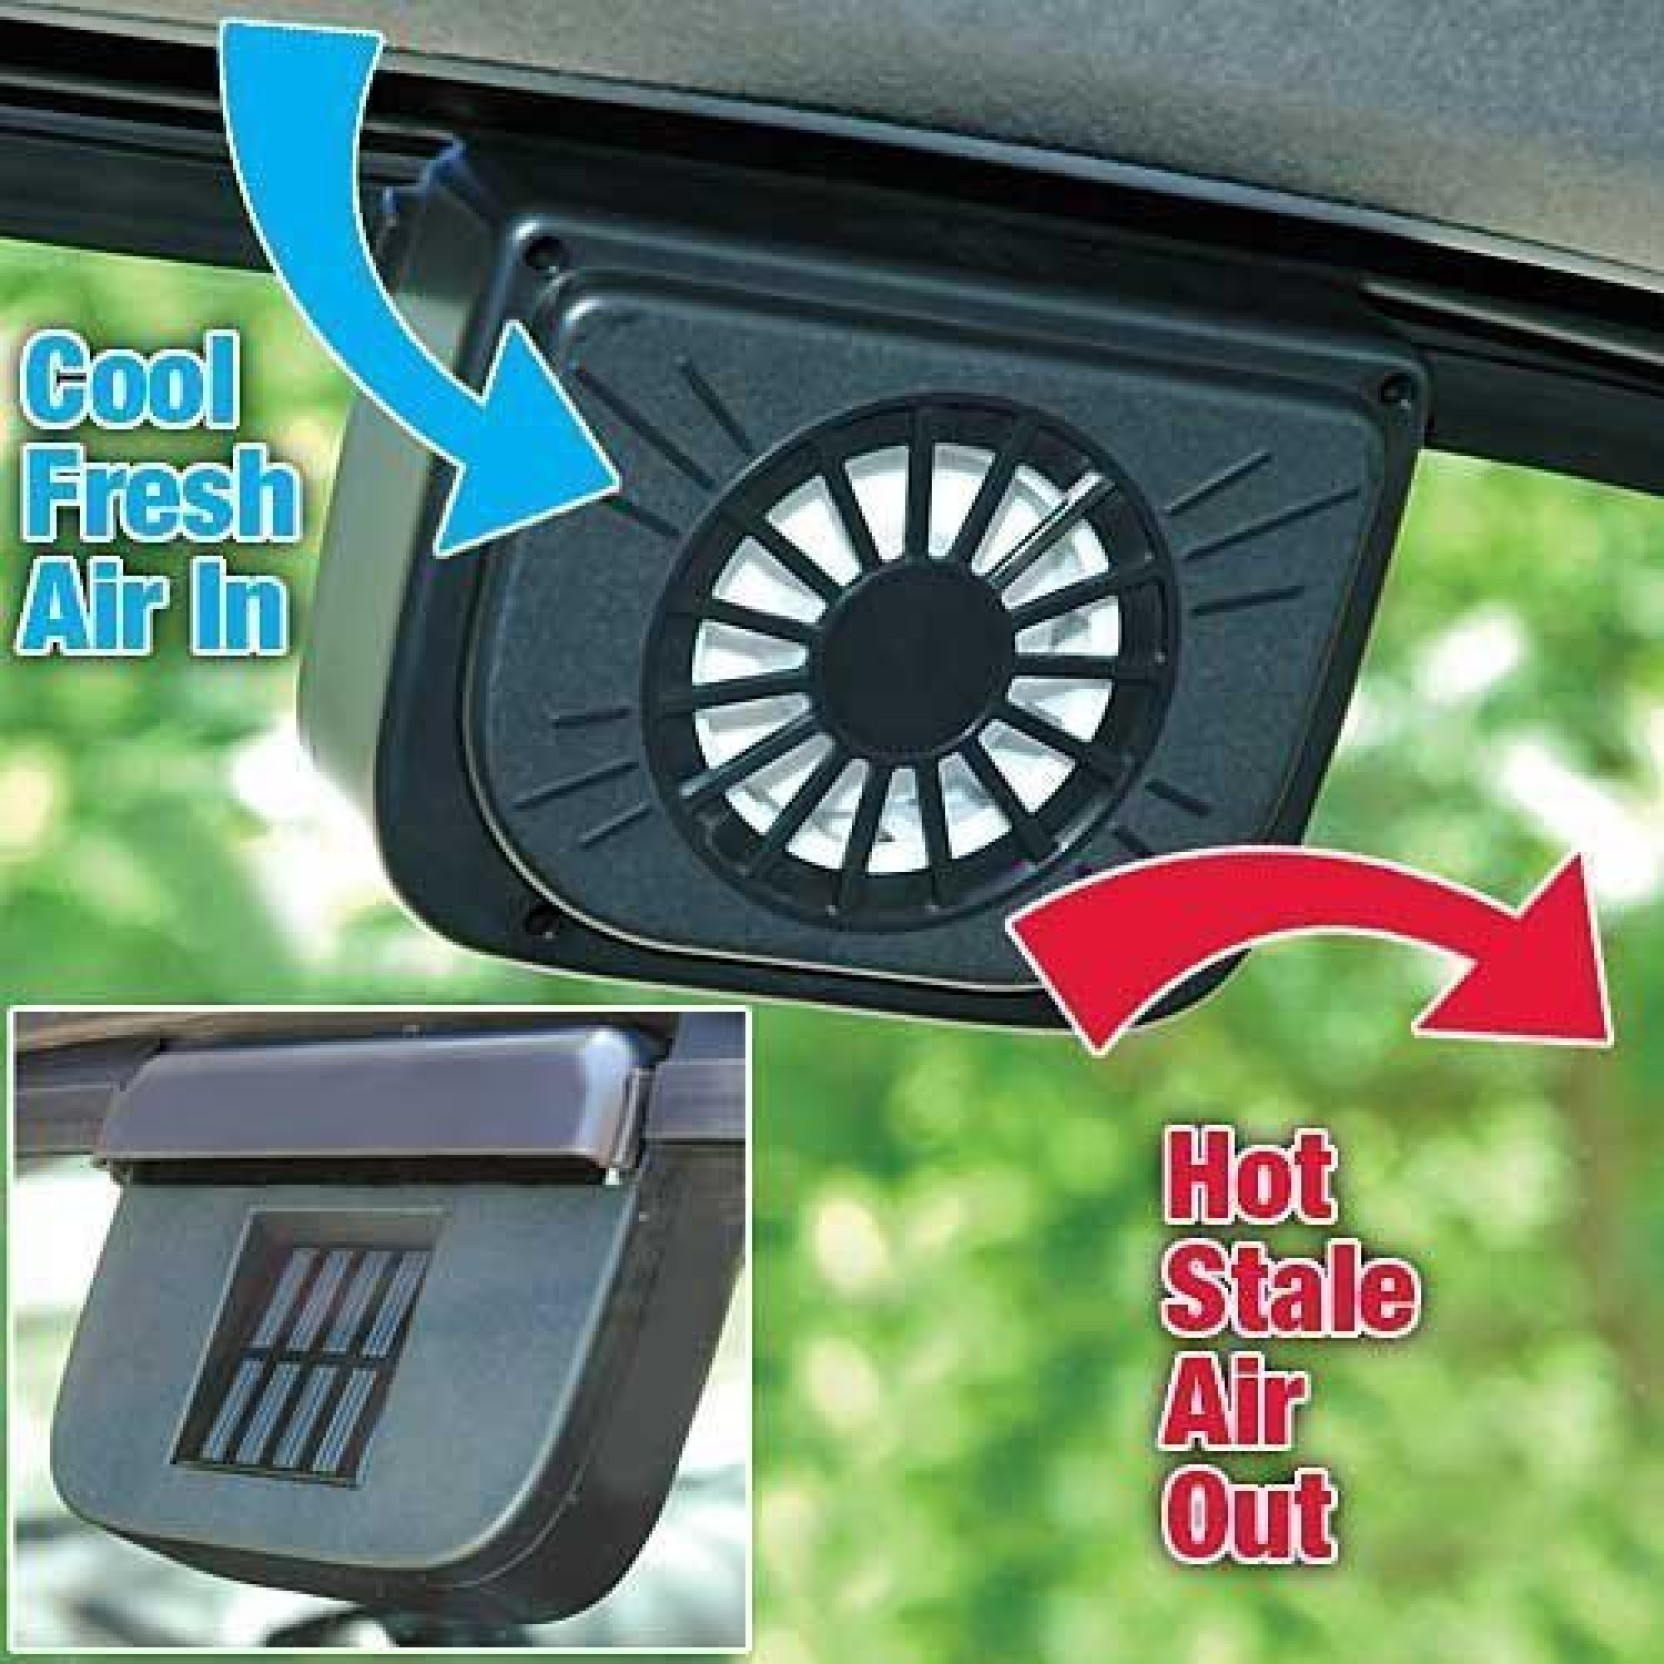 Autocool Solar Power Car Fan Price In India Buy Auto Cool On Offer